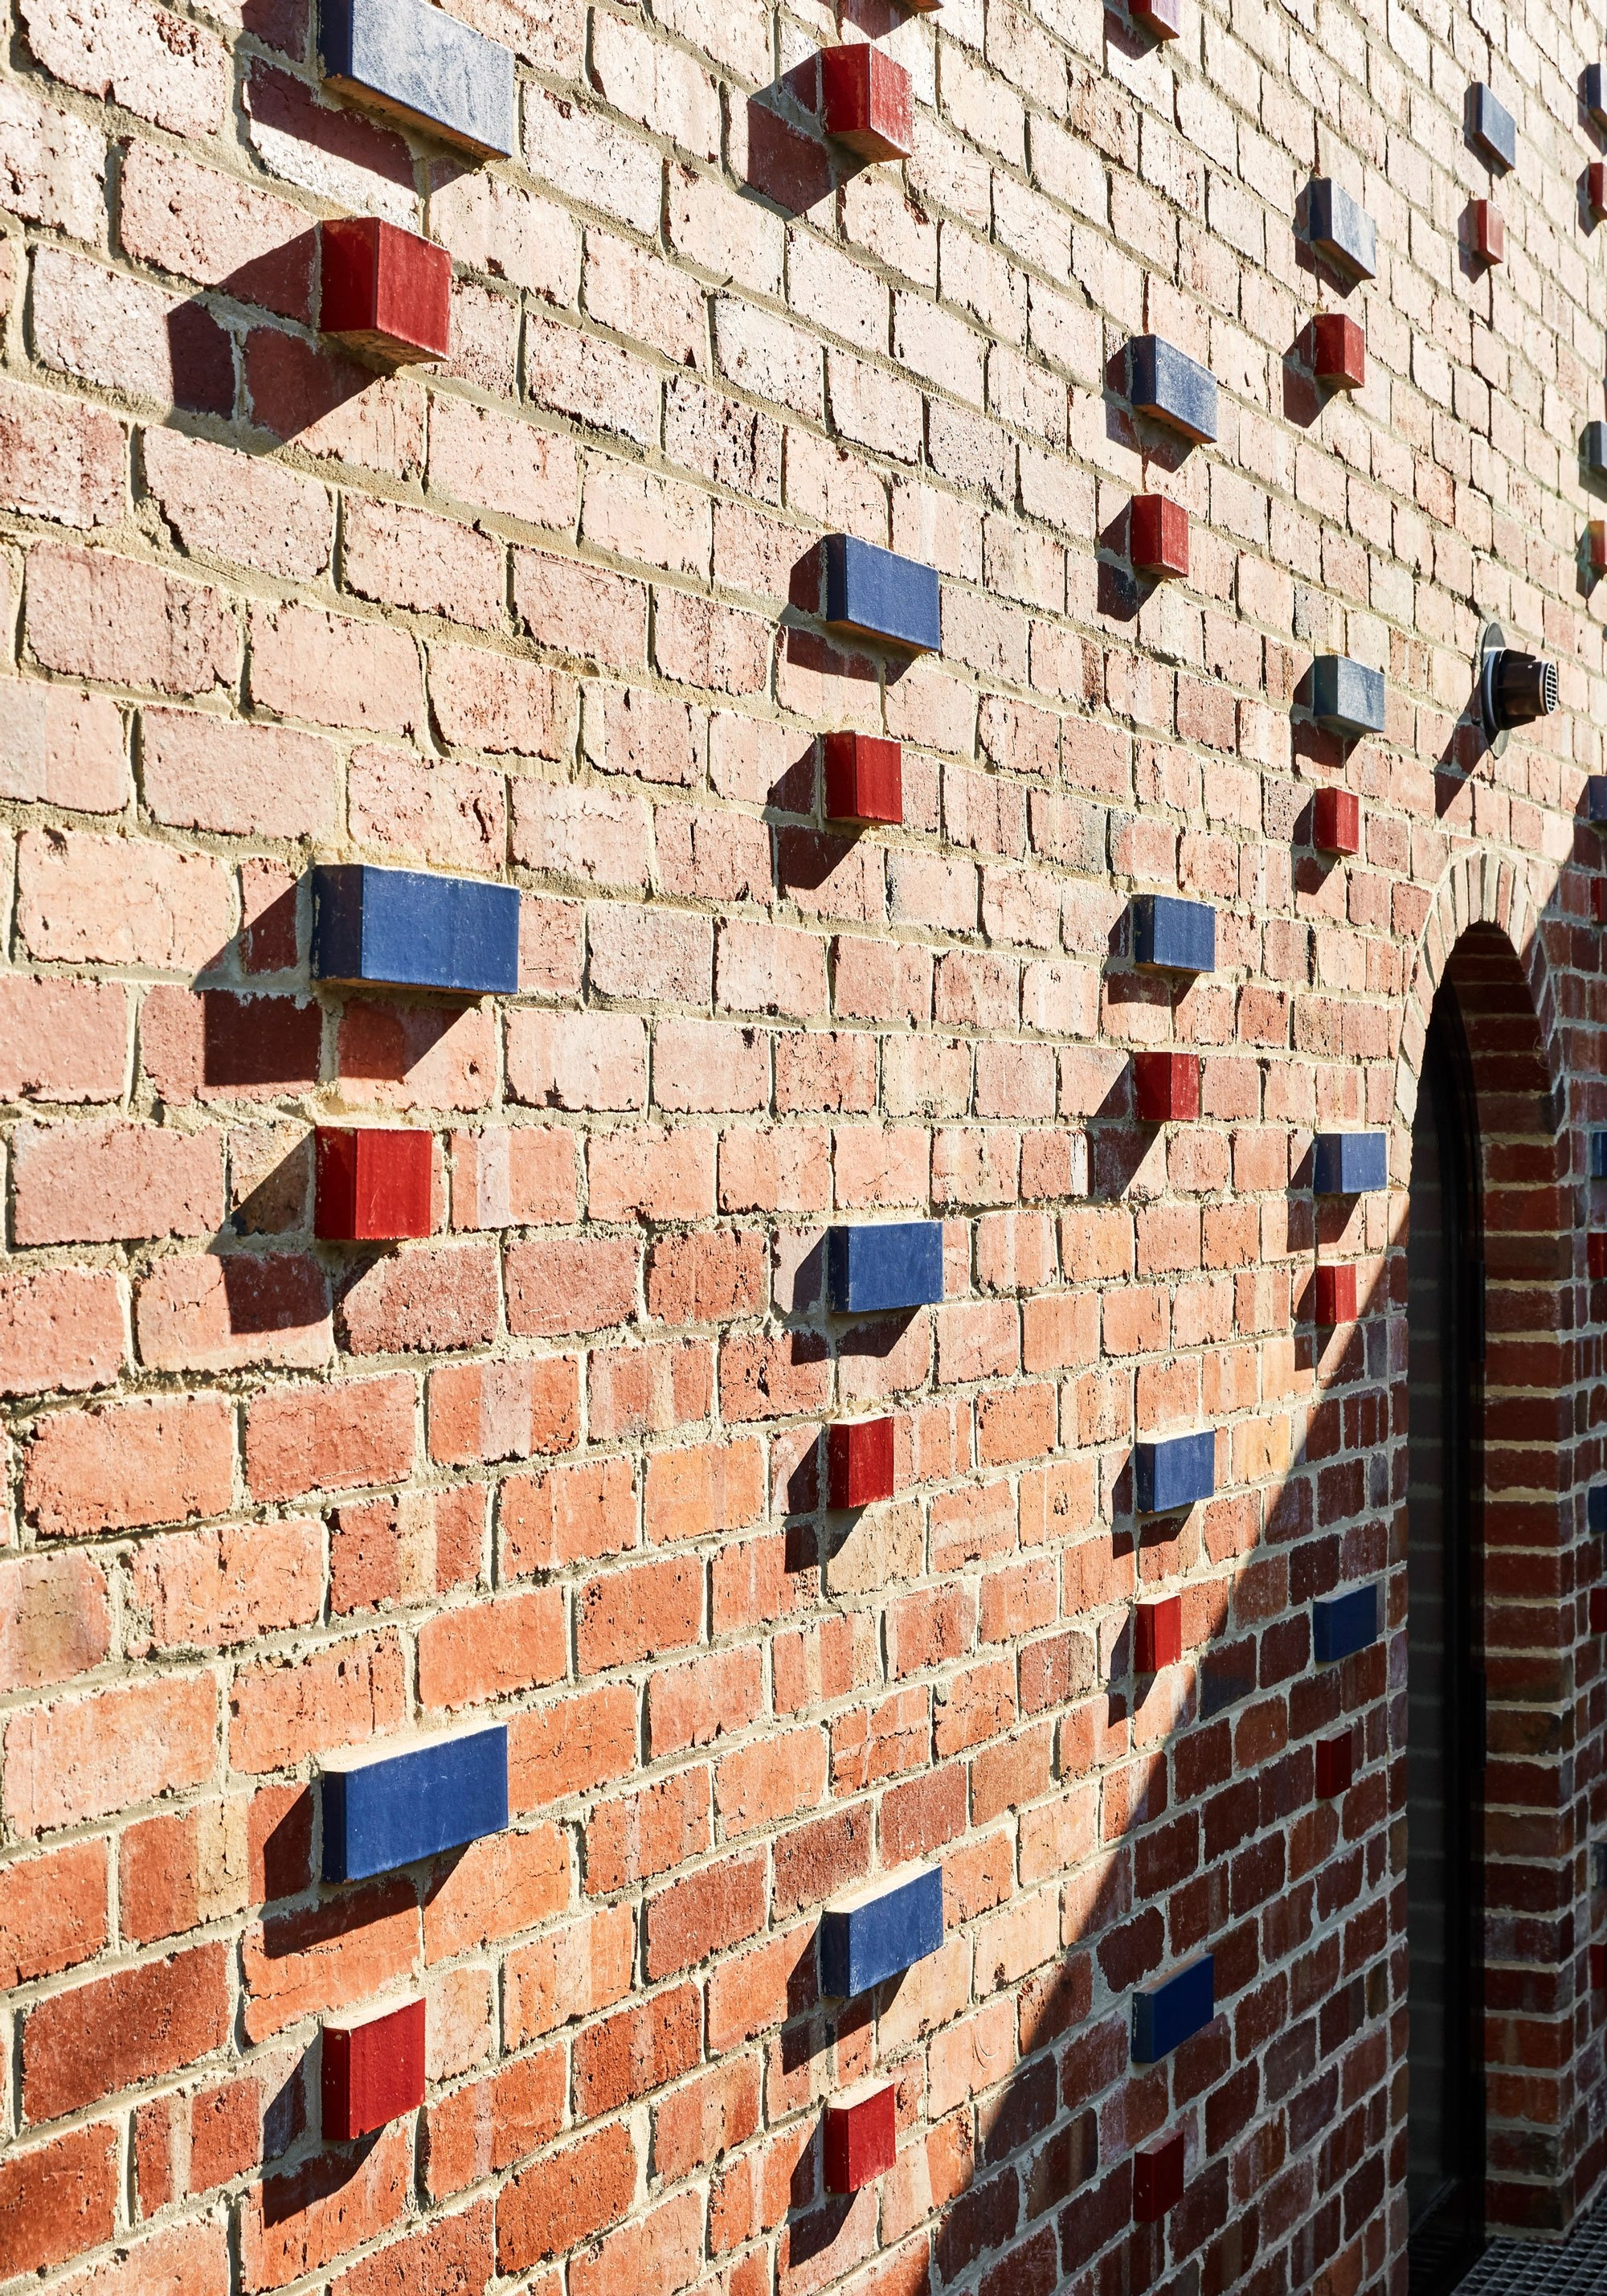 exposed-brick-architecture-gems-brickface-11